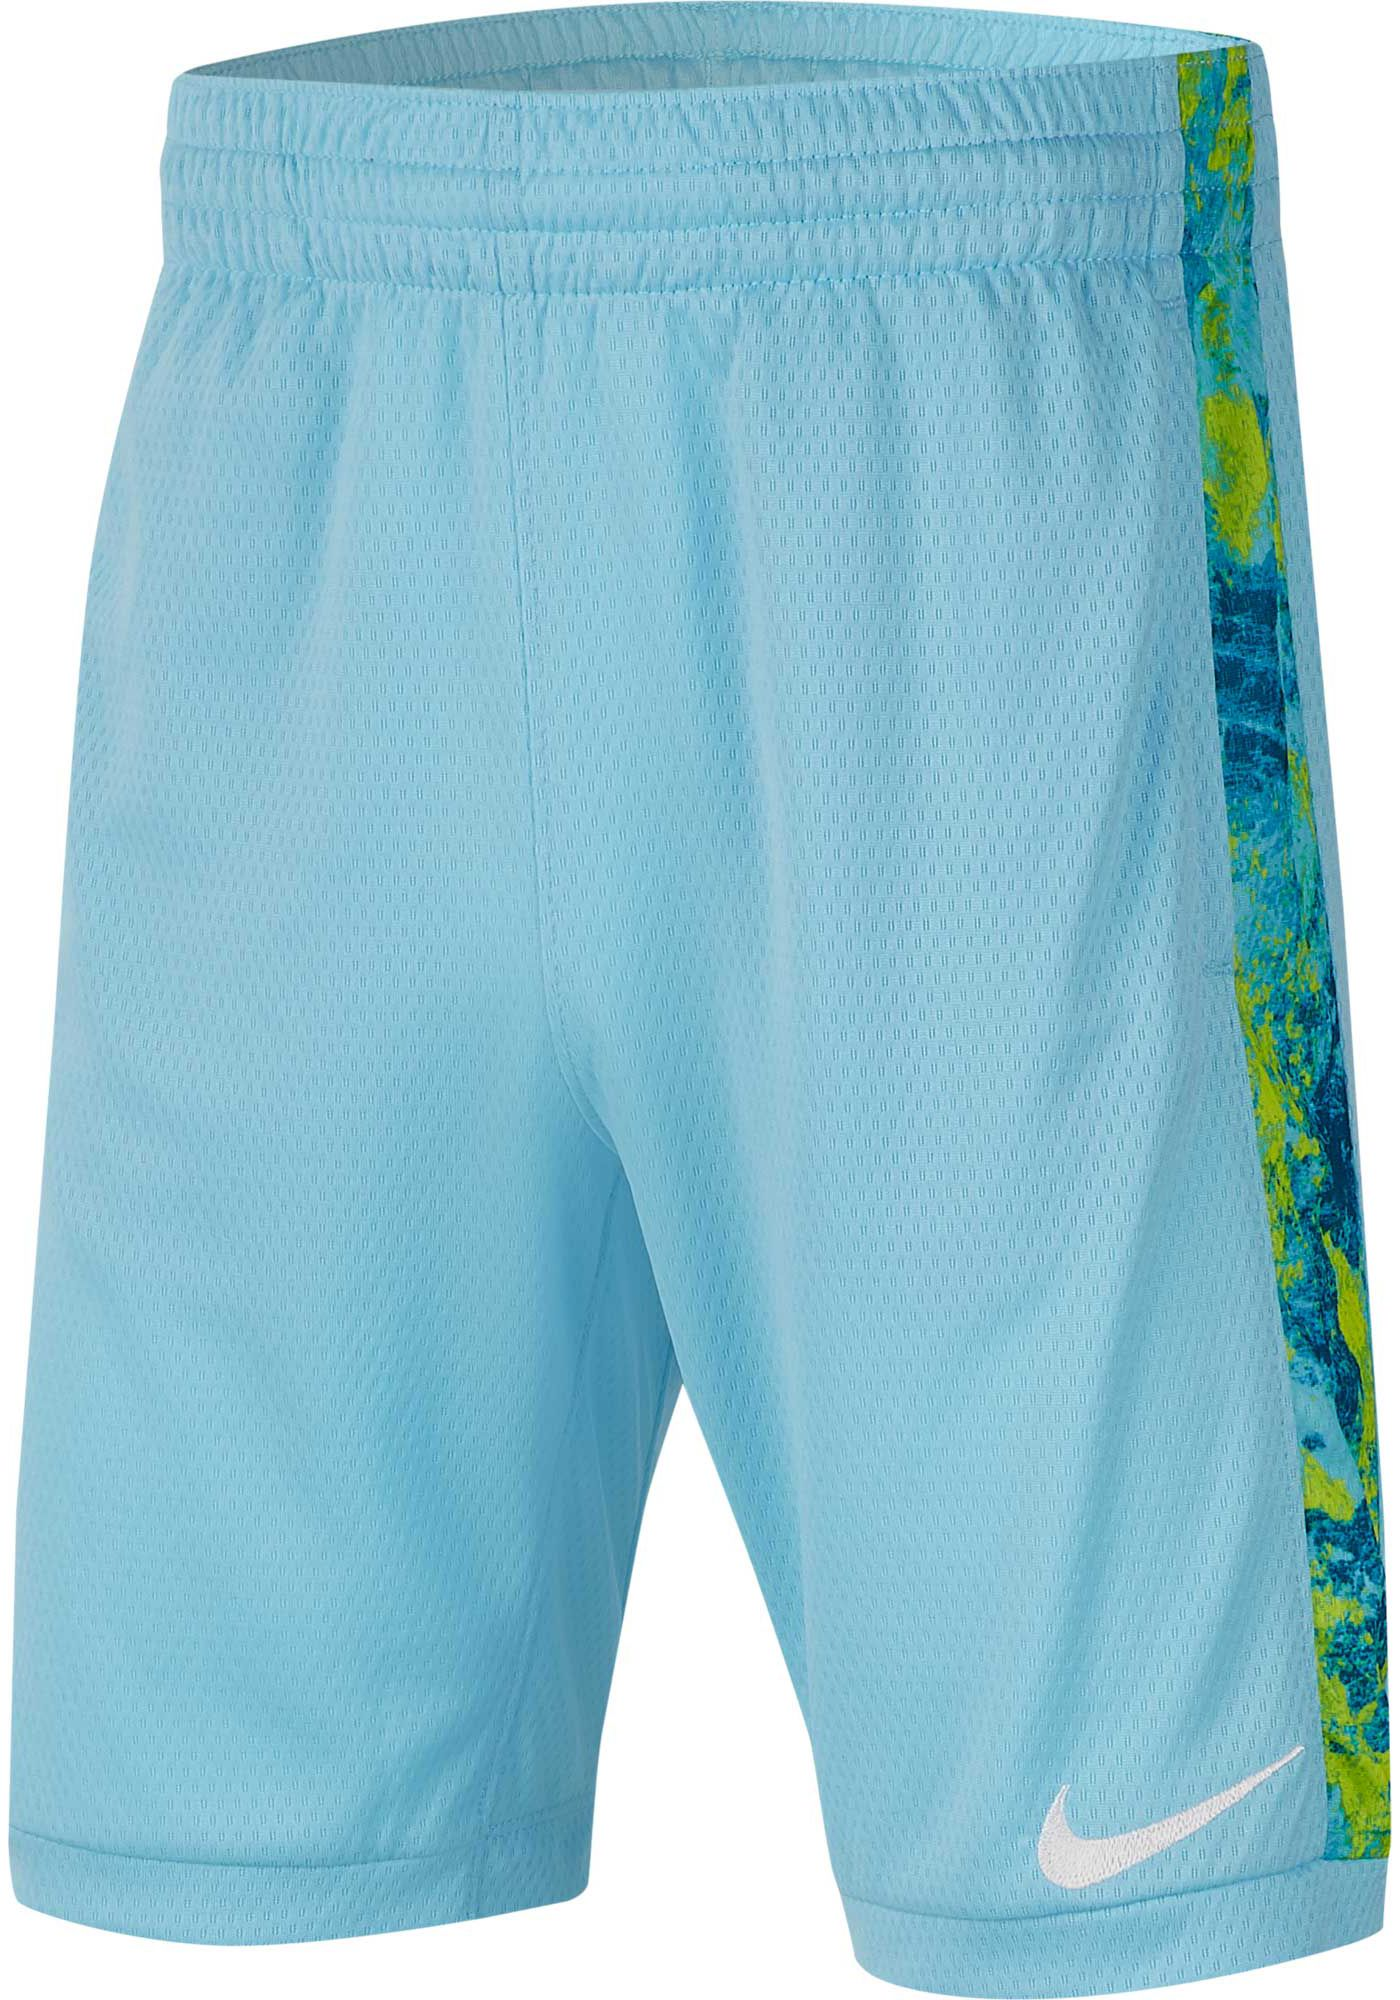 Nike Boys' Trophy Dri-FIT Novelty Shorts